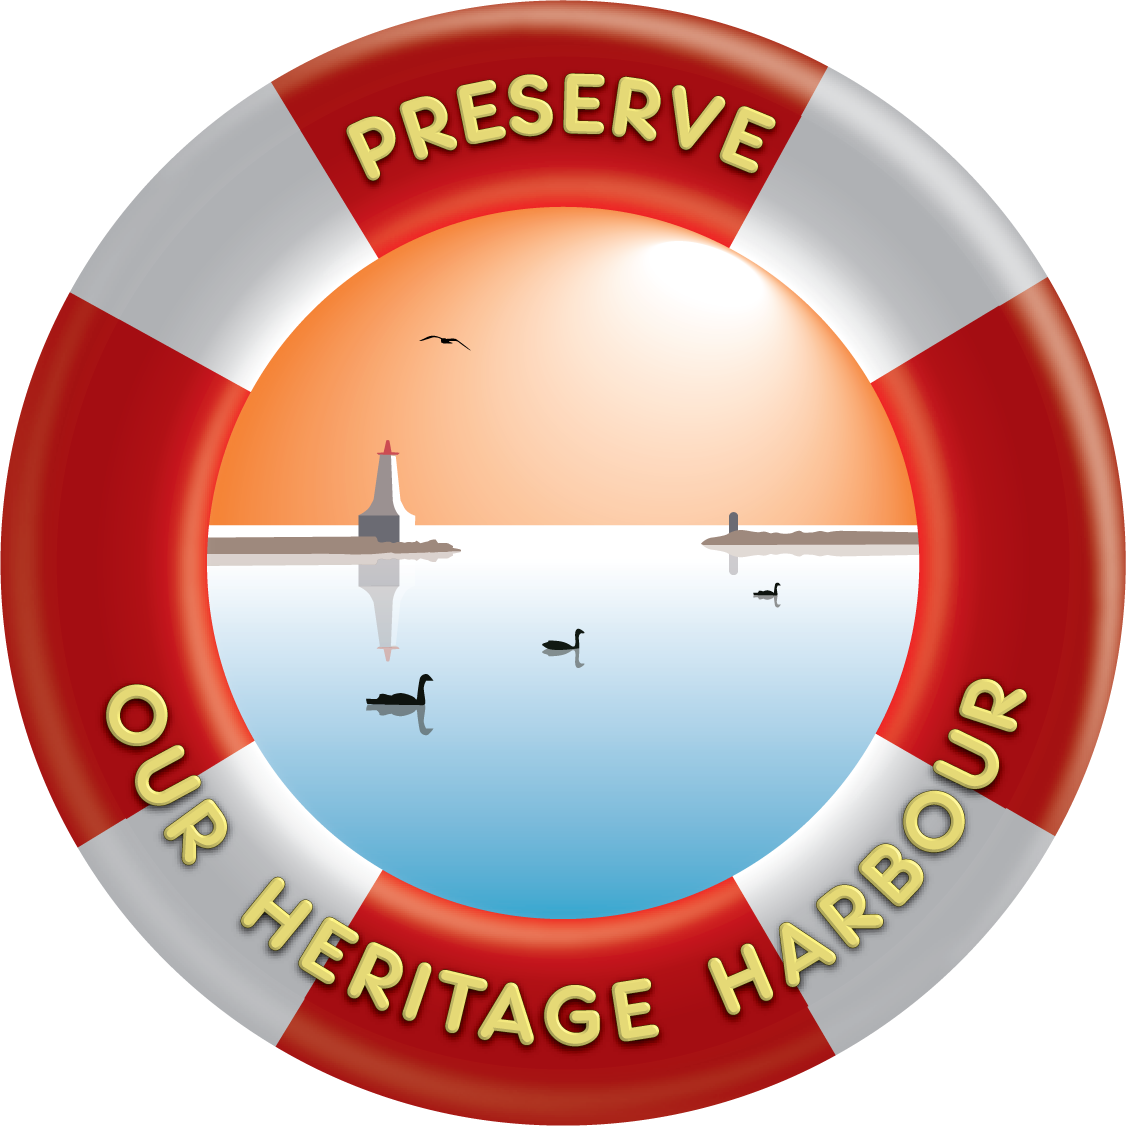 logo in the form of a red and white life preserver with the words PRESERVE OUR HERITAGE HARBOUR in yellow. in the centre is an image of calm blue water, a white lighthouse and three waterfowl